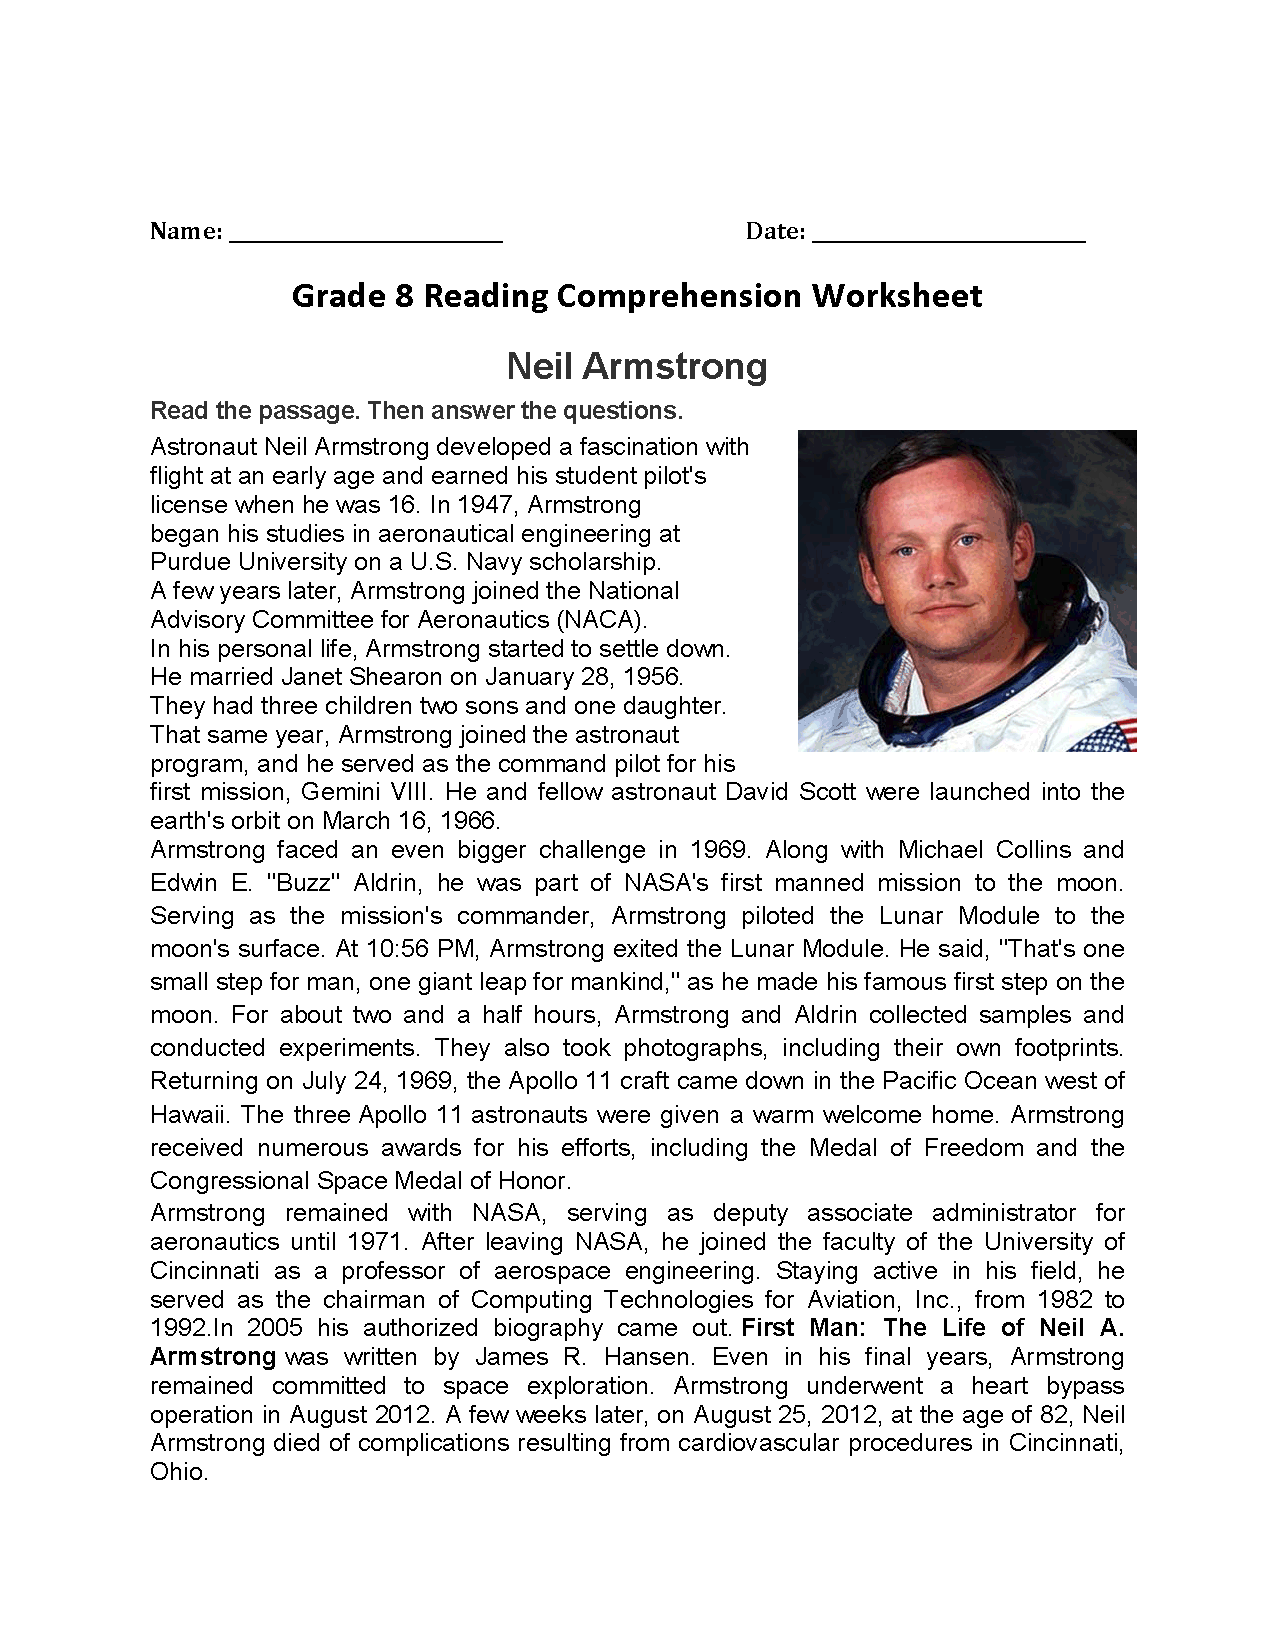 Neil Armstrong Eigth Grade Reading Worksheets With Images